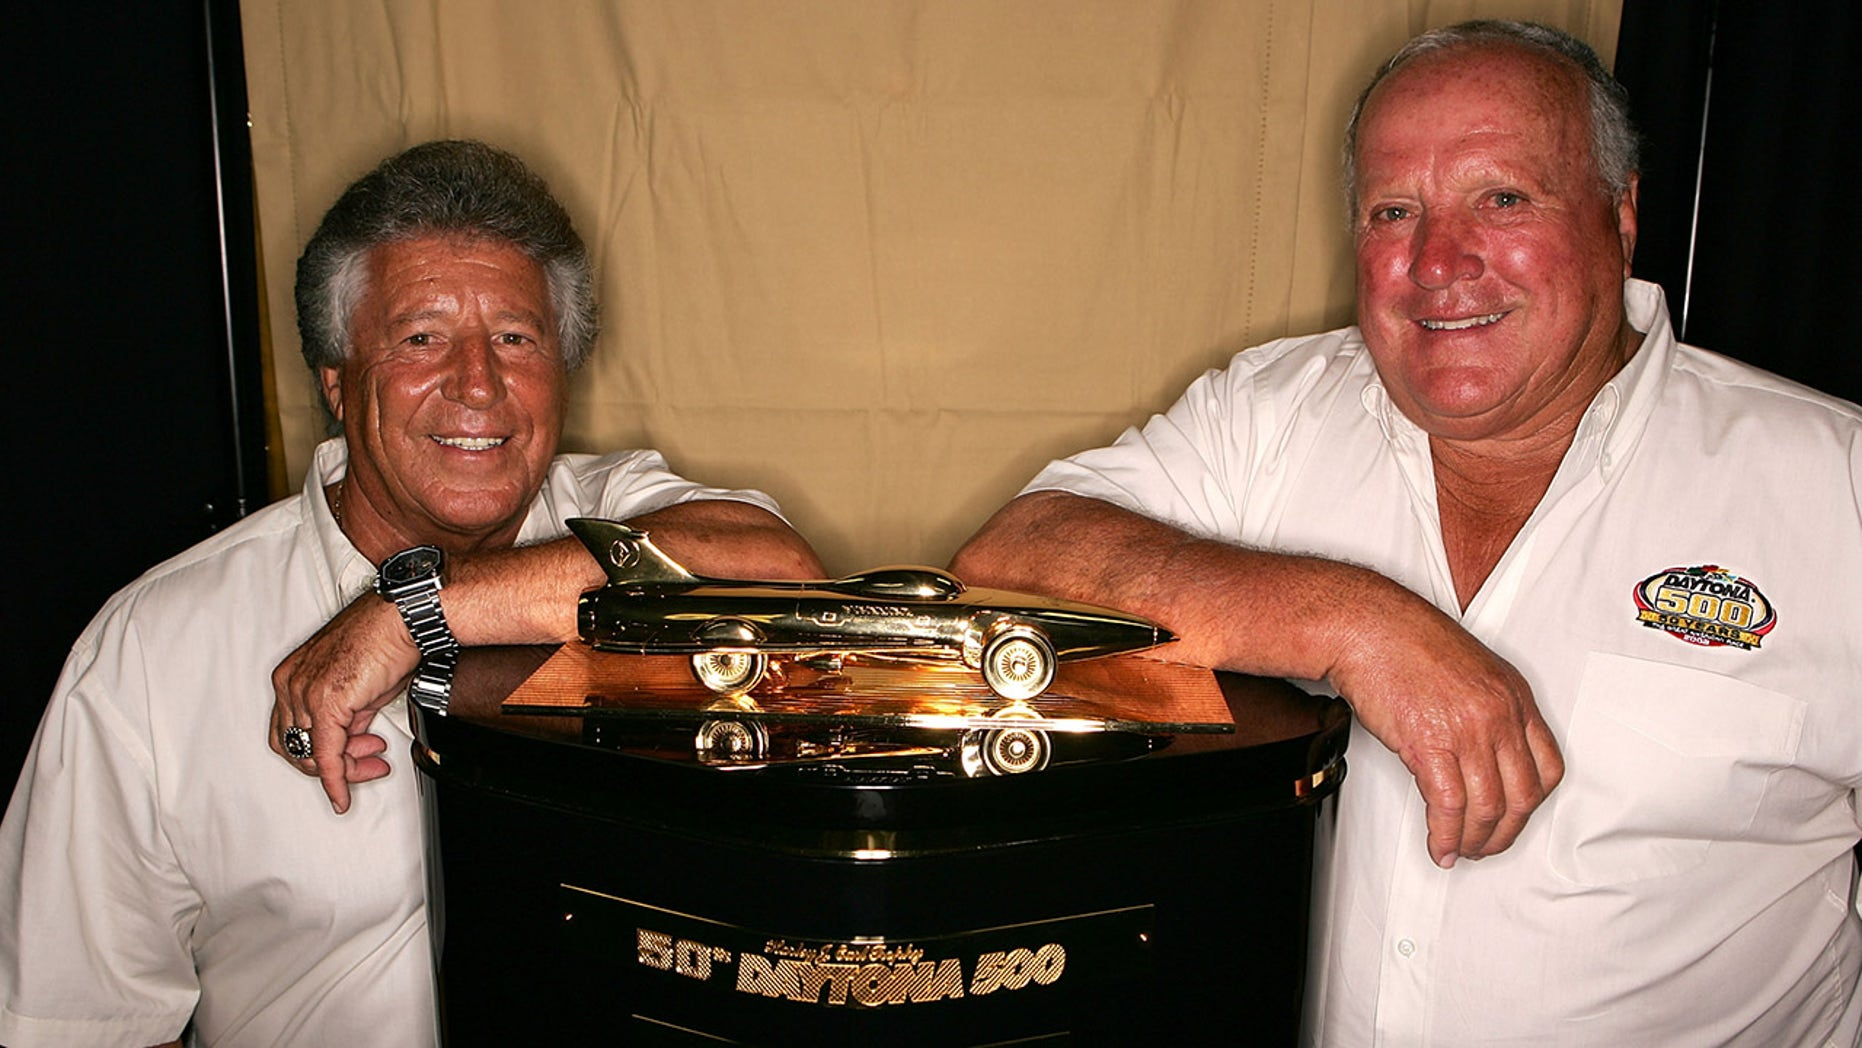 Andretti and Foyt, seen here in 2007, each have a NASCAR Daytona 500 victory to go with their open-wheel racing achievements.